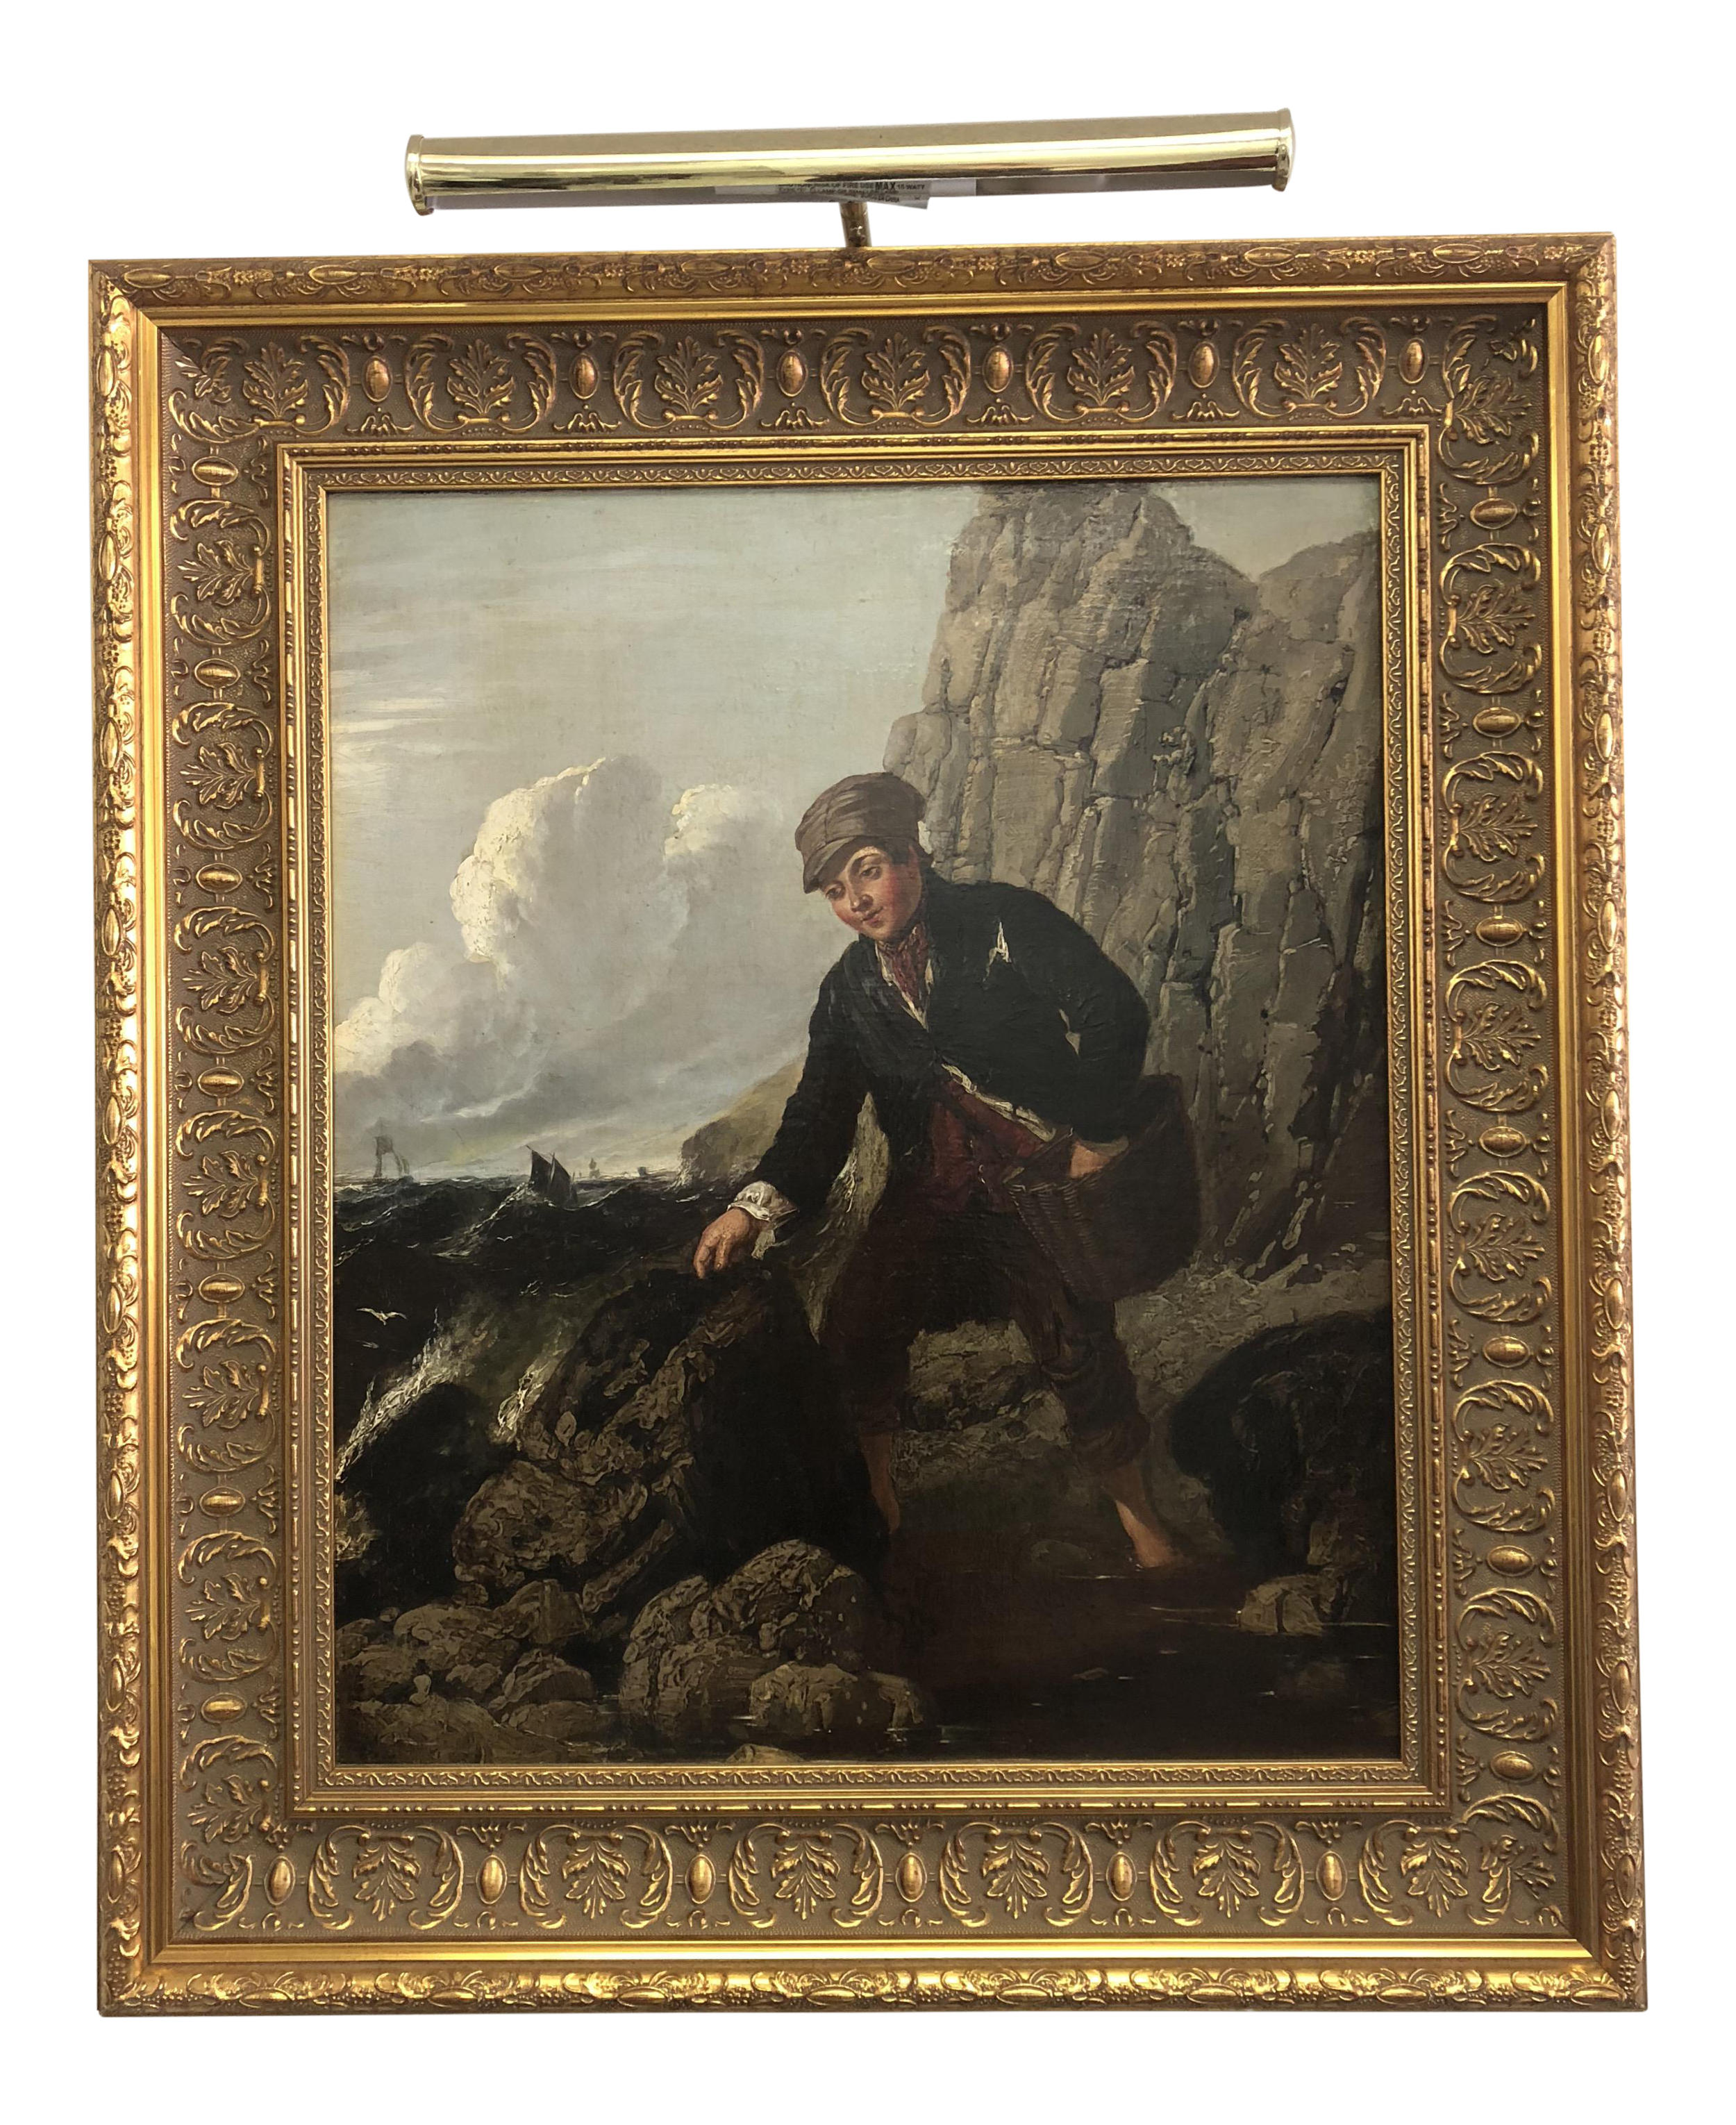 william-john-thomas-collins-the-mussel-gatherer-oil-on-canvas-painting-4512.png